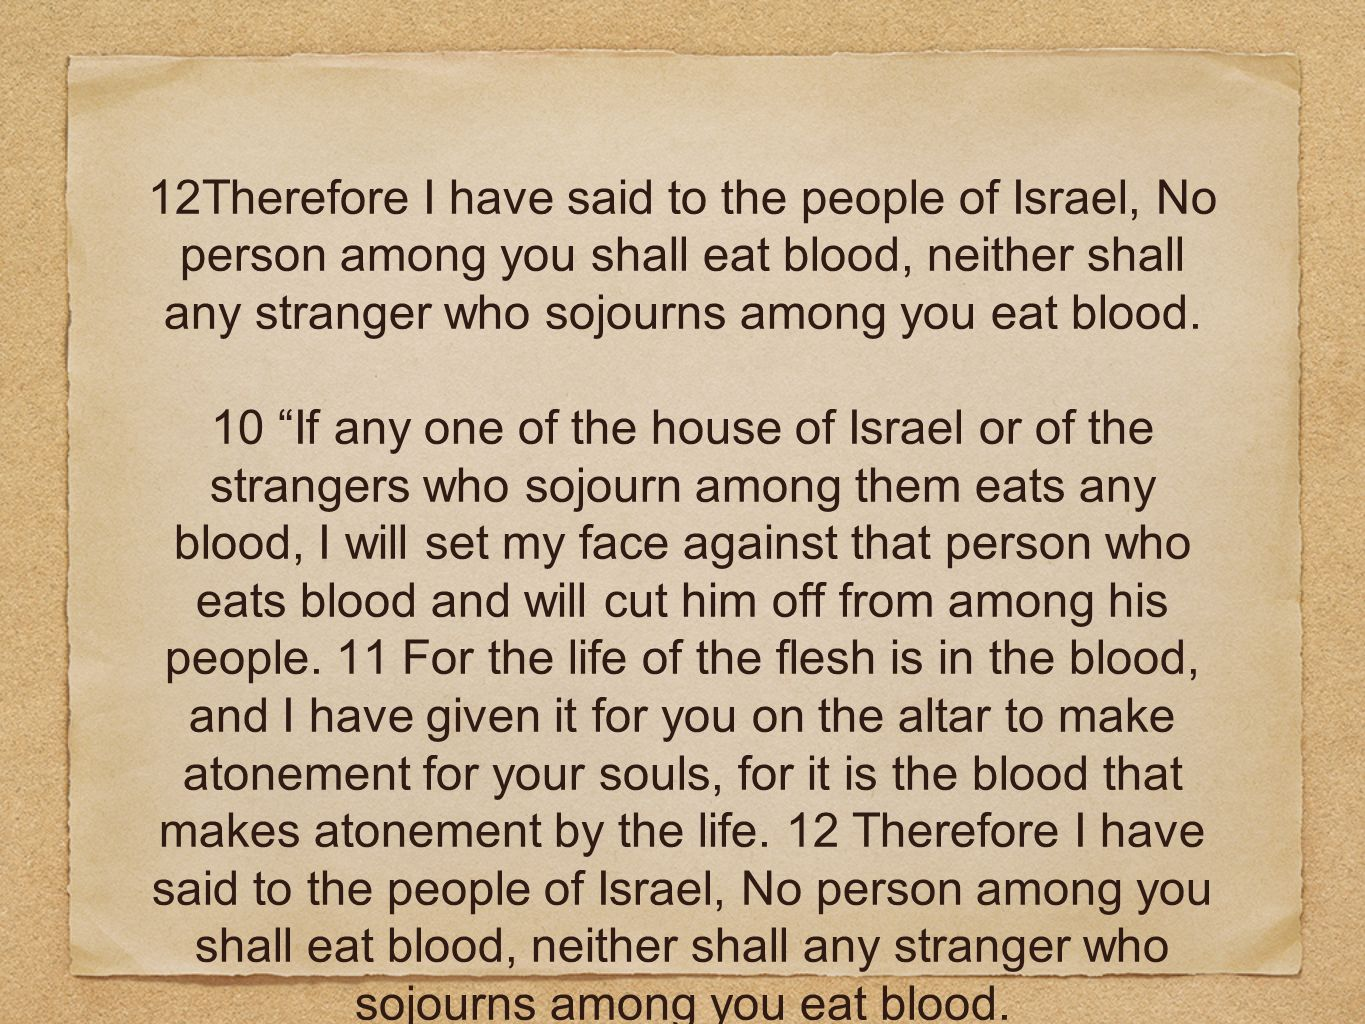 12Therefore I have said to the people of Israel, No person among you shall eat blood, neither shall any stranger who sojourns among you eat blood. 10